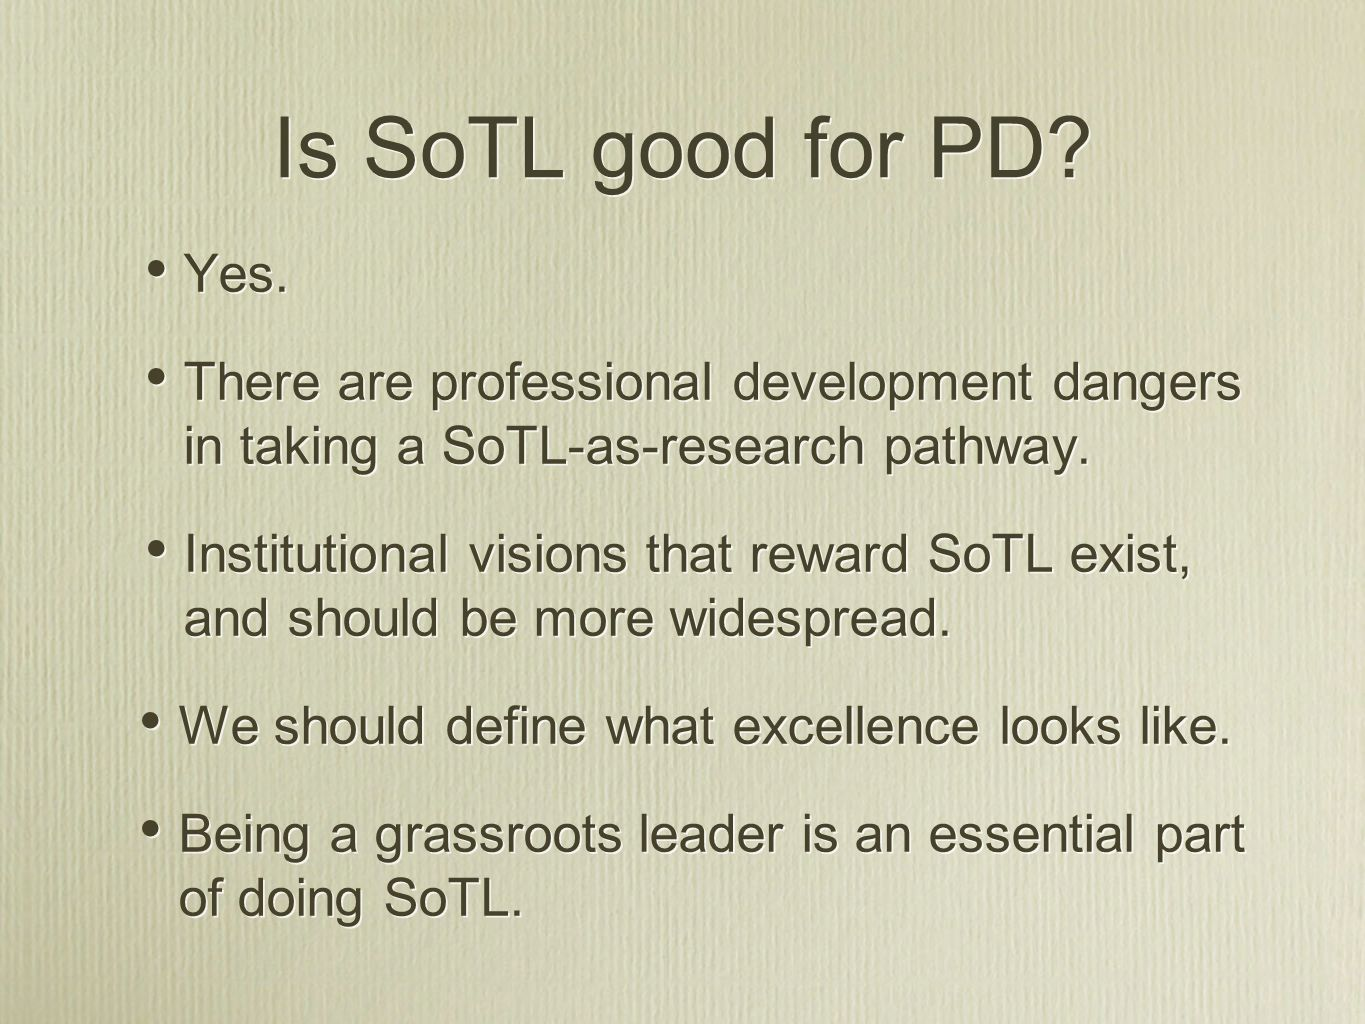 Is SoTL good for PD Yes. There are professional development dangers in taking a SoTL-as-research pathway.